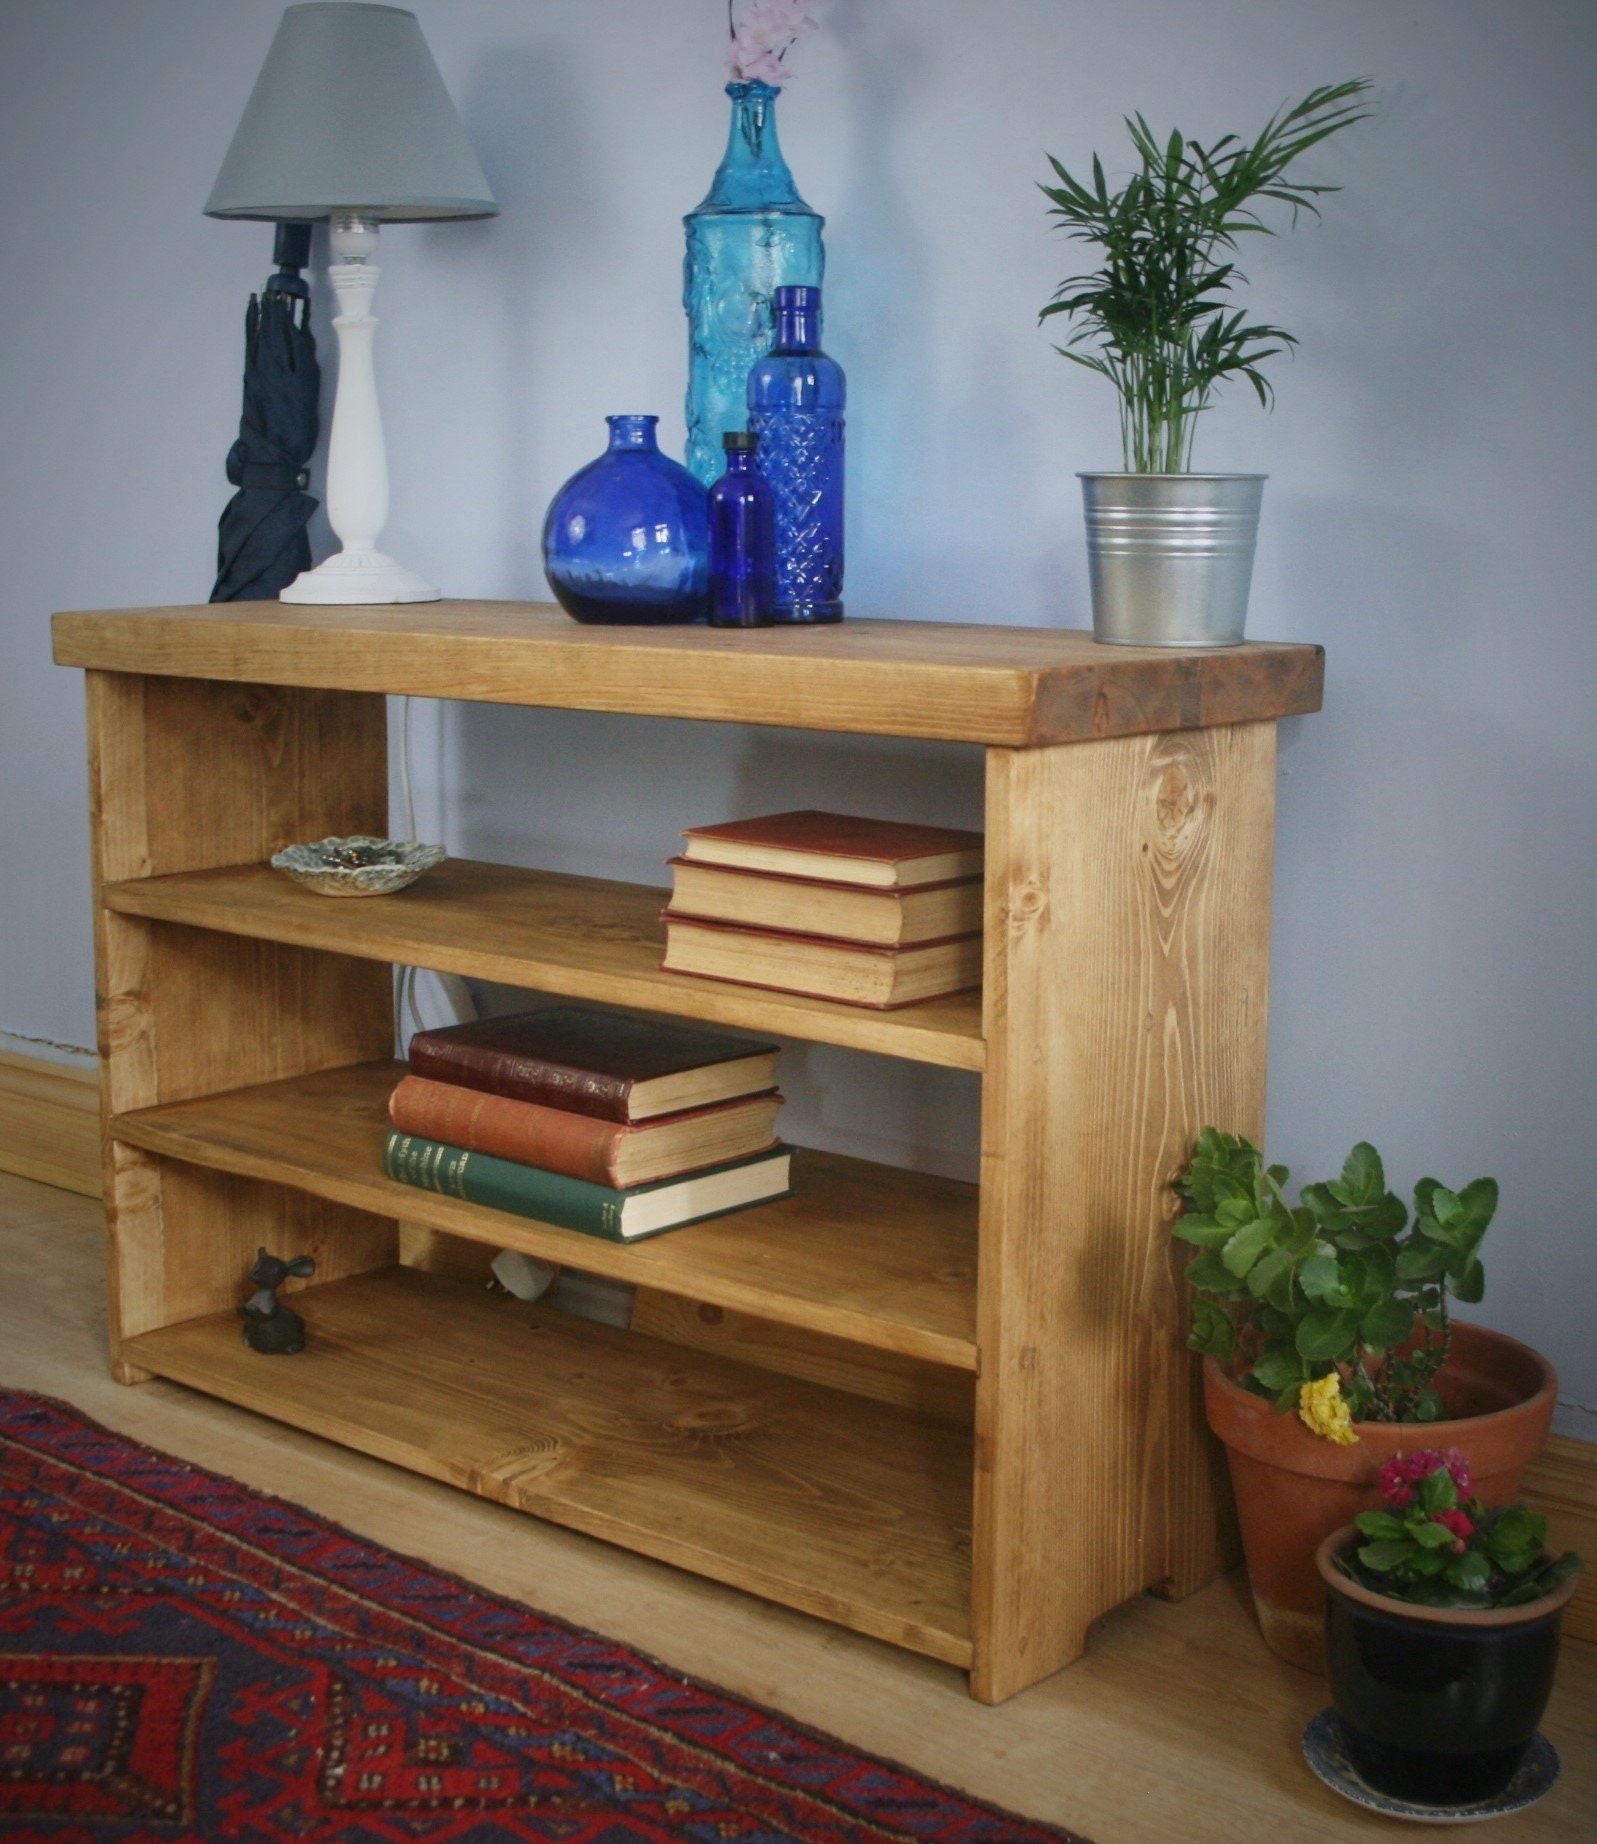 Hall Table Low Bookshelves Eco Natural Wood Slab Table Top 90 Wide X60hx29d Cm Modern Rustic Farmhouse Style Handmade In Somerset Uk